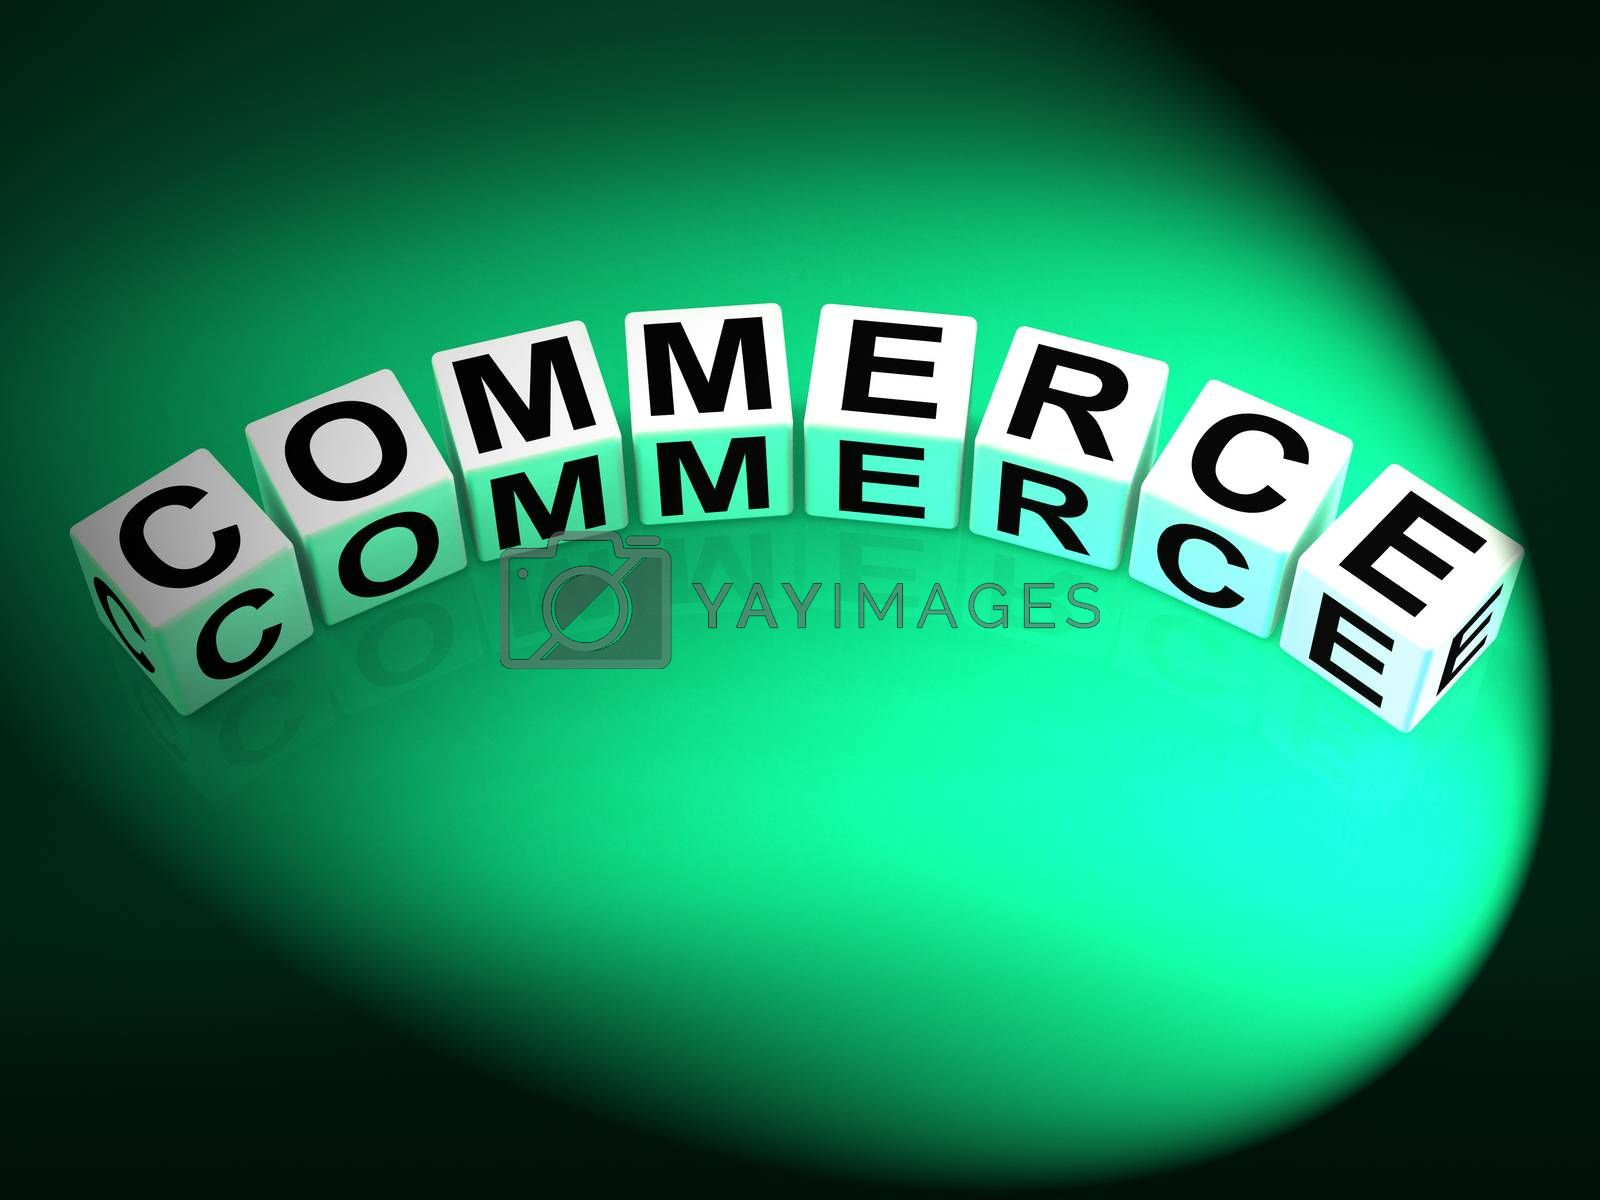 Commerce Dice Represent Commercial Marketing and Financial Trade by stuartmiles